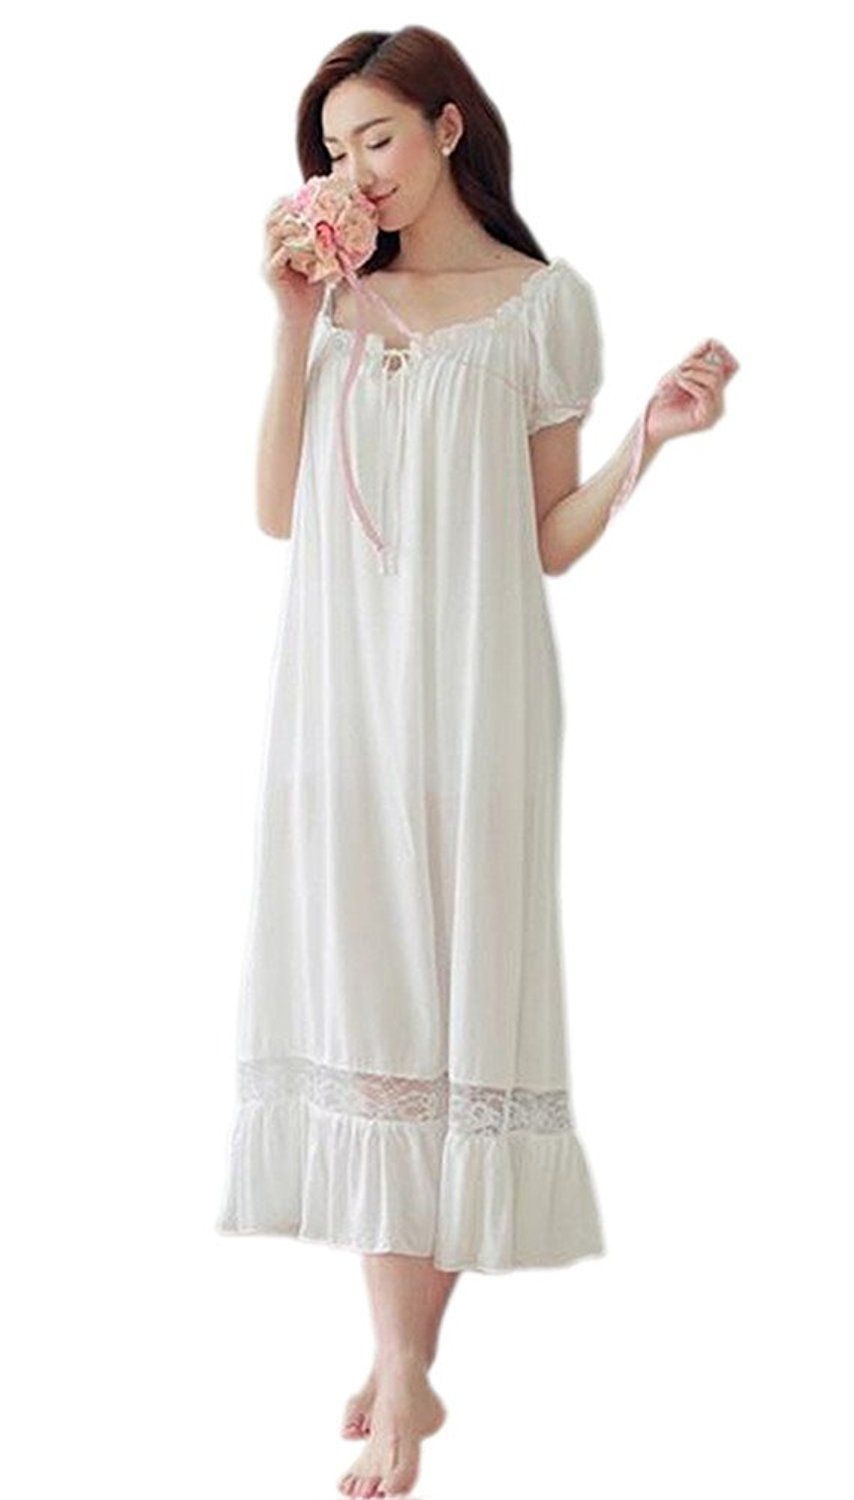 85de956365 Women 100% Cotton Vintage Short Sleeve Princess Long Nightgowns (L ...